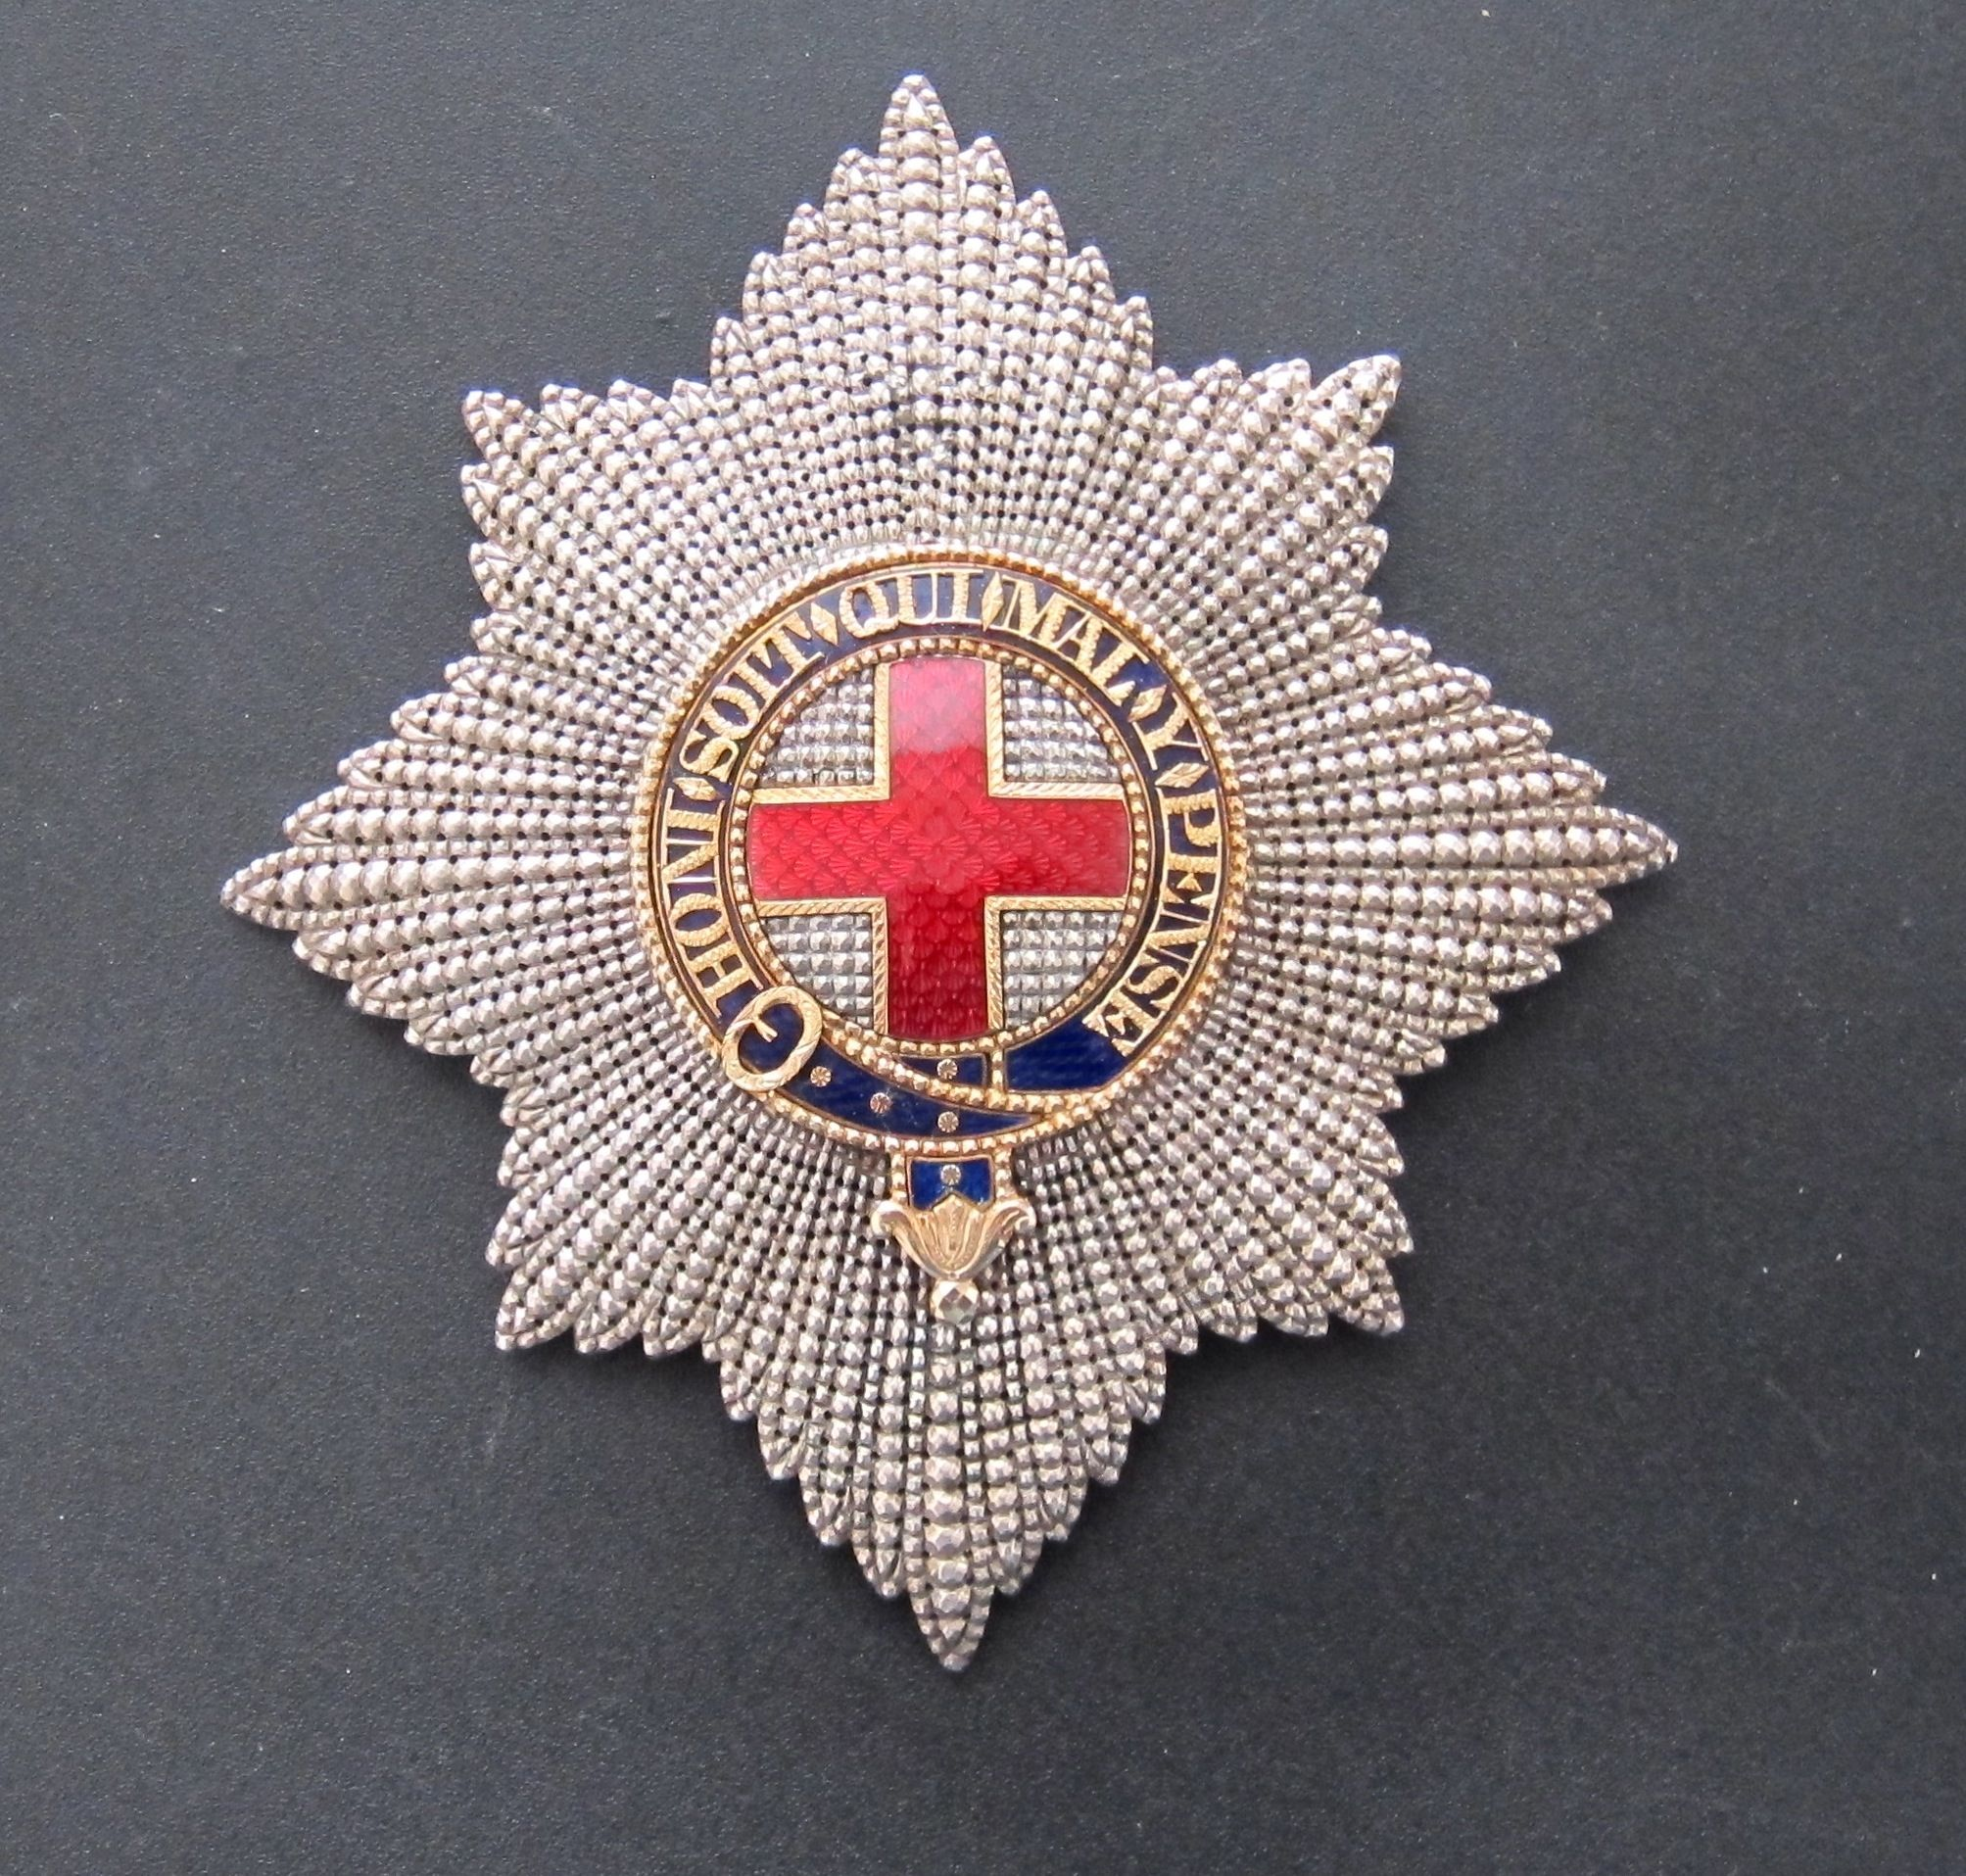 The star of the Order of the Garter, which is worn pinned to the left breast, was introduced in the 17th century by King Charles I and is a colourfully enamelled depiction of the heraldic shield of St. George's Cross, encircled by the Garter, which is itself encircled by an eight-point silver badge.